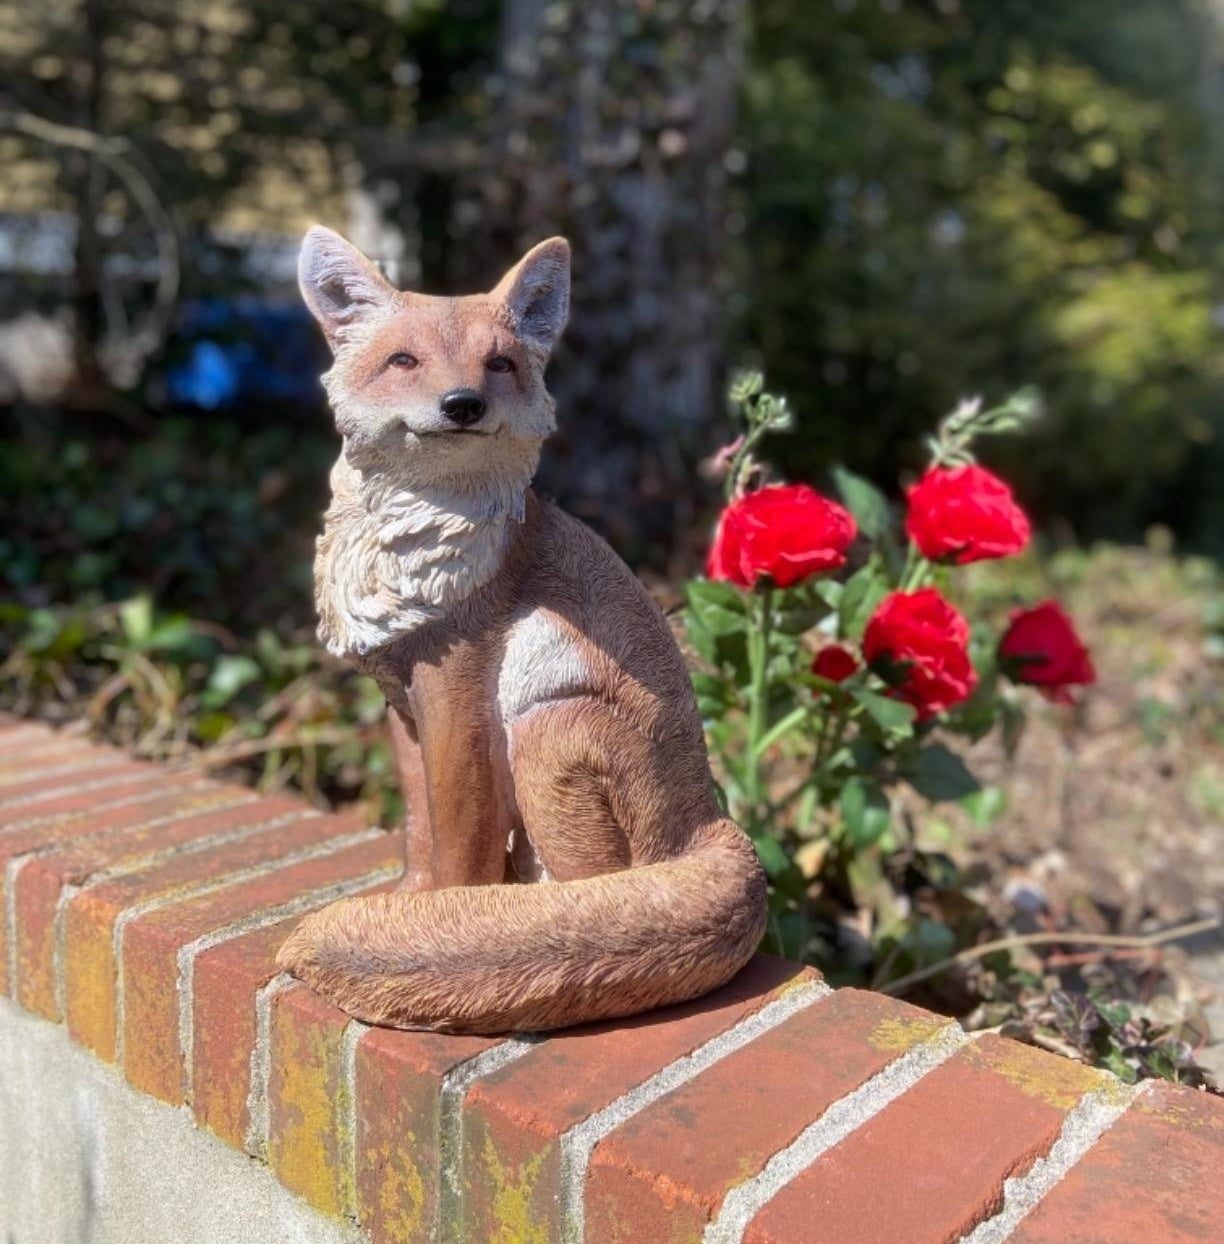 A fox statue with a calm expression placed on a stone ledge